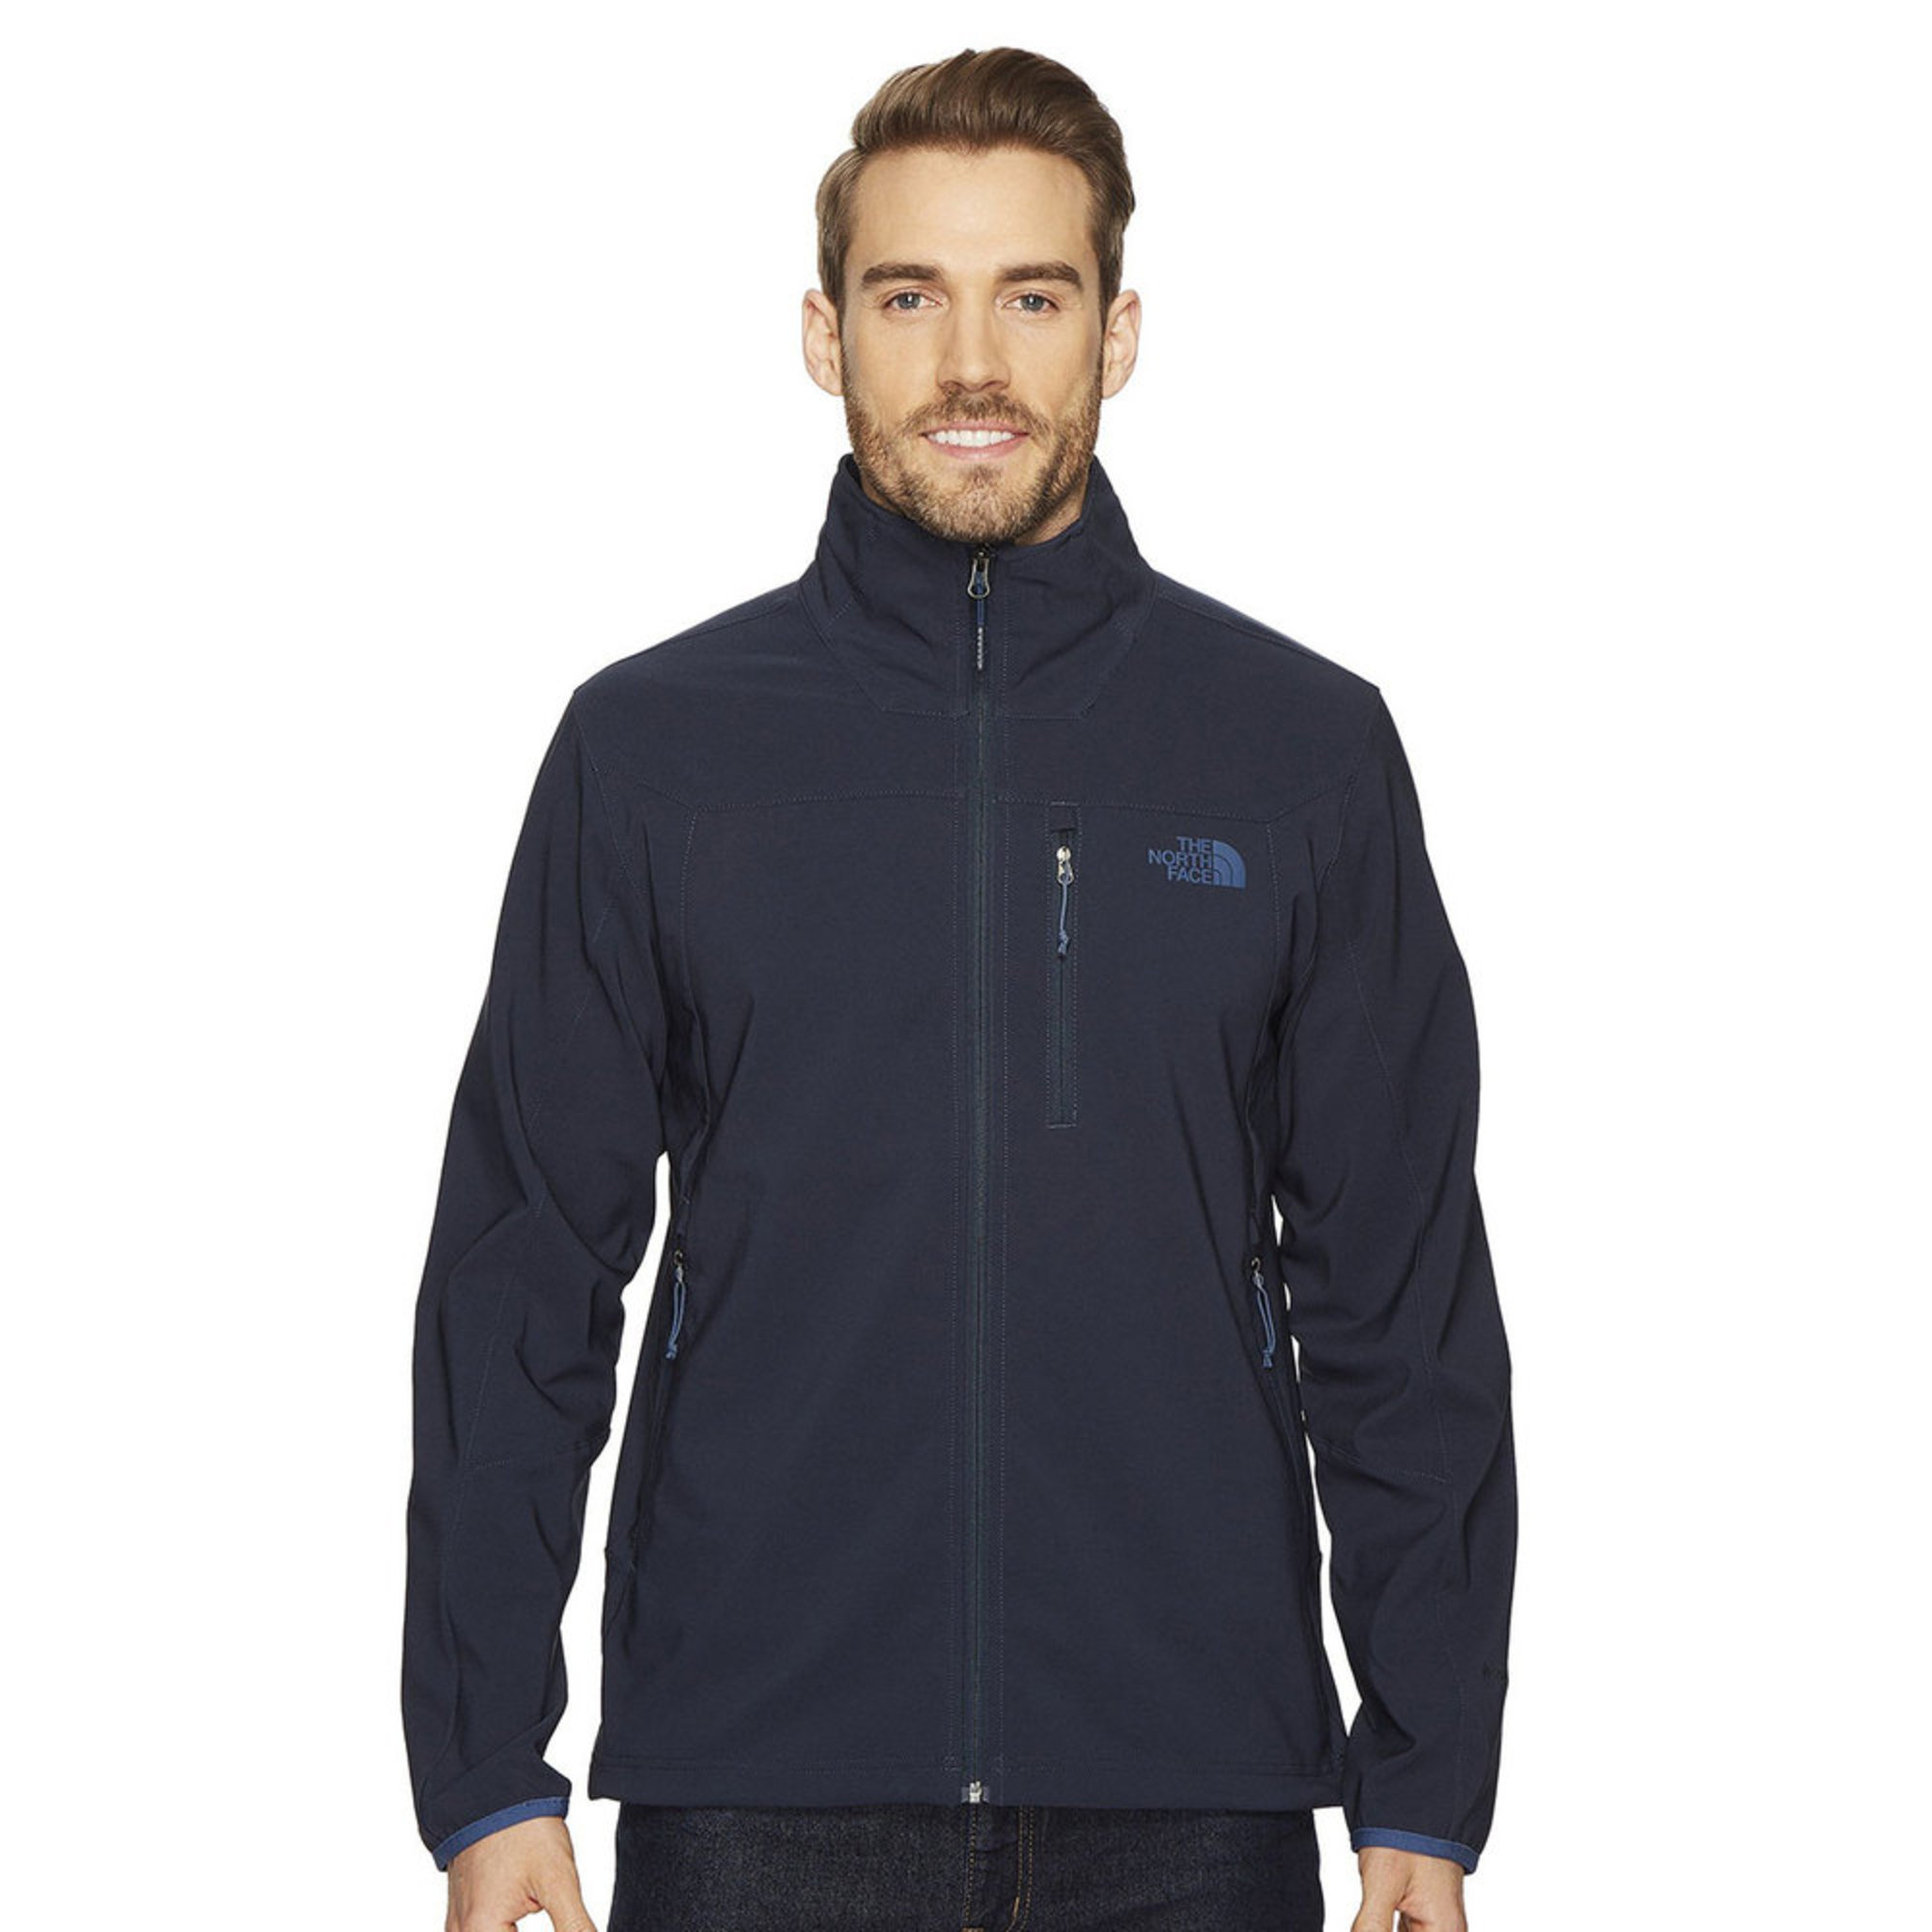 The North Face. The North Face Men s Apex Nimble Jacket 5213b7209